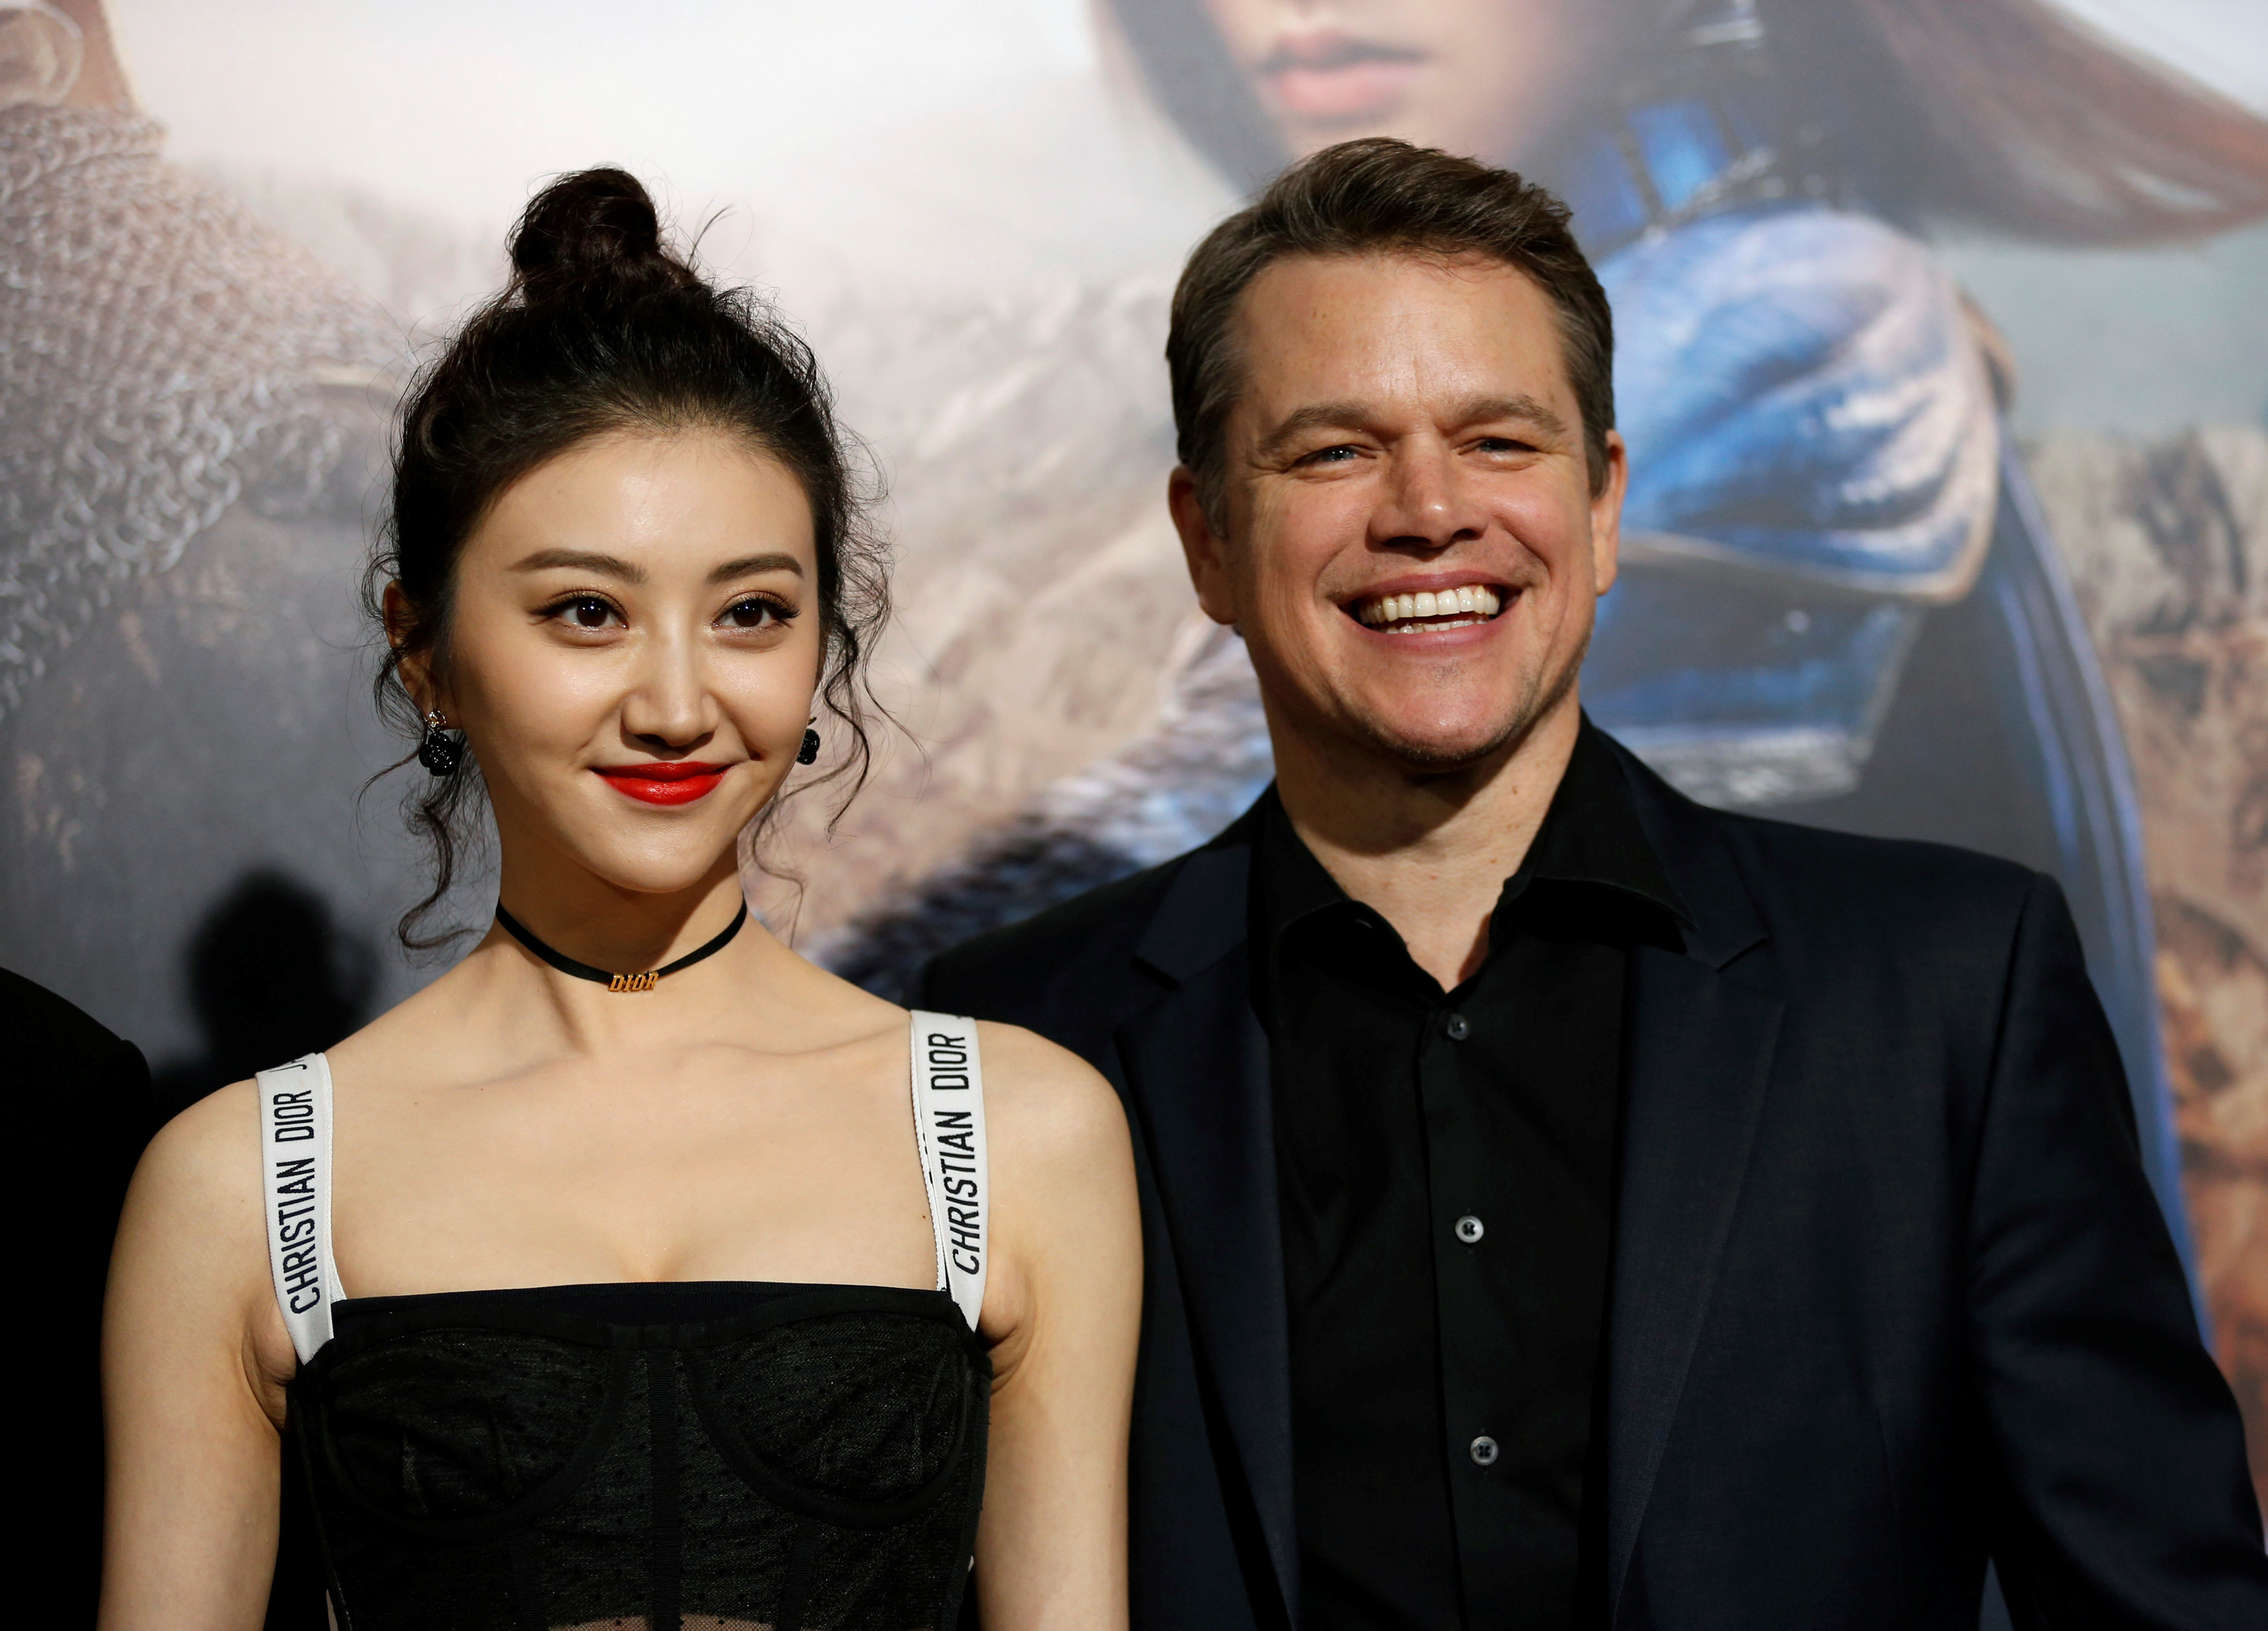 Matt Damon with Jing Tian at the premiere of The Great Wall in 2016.